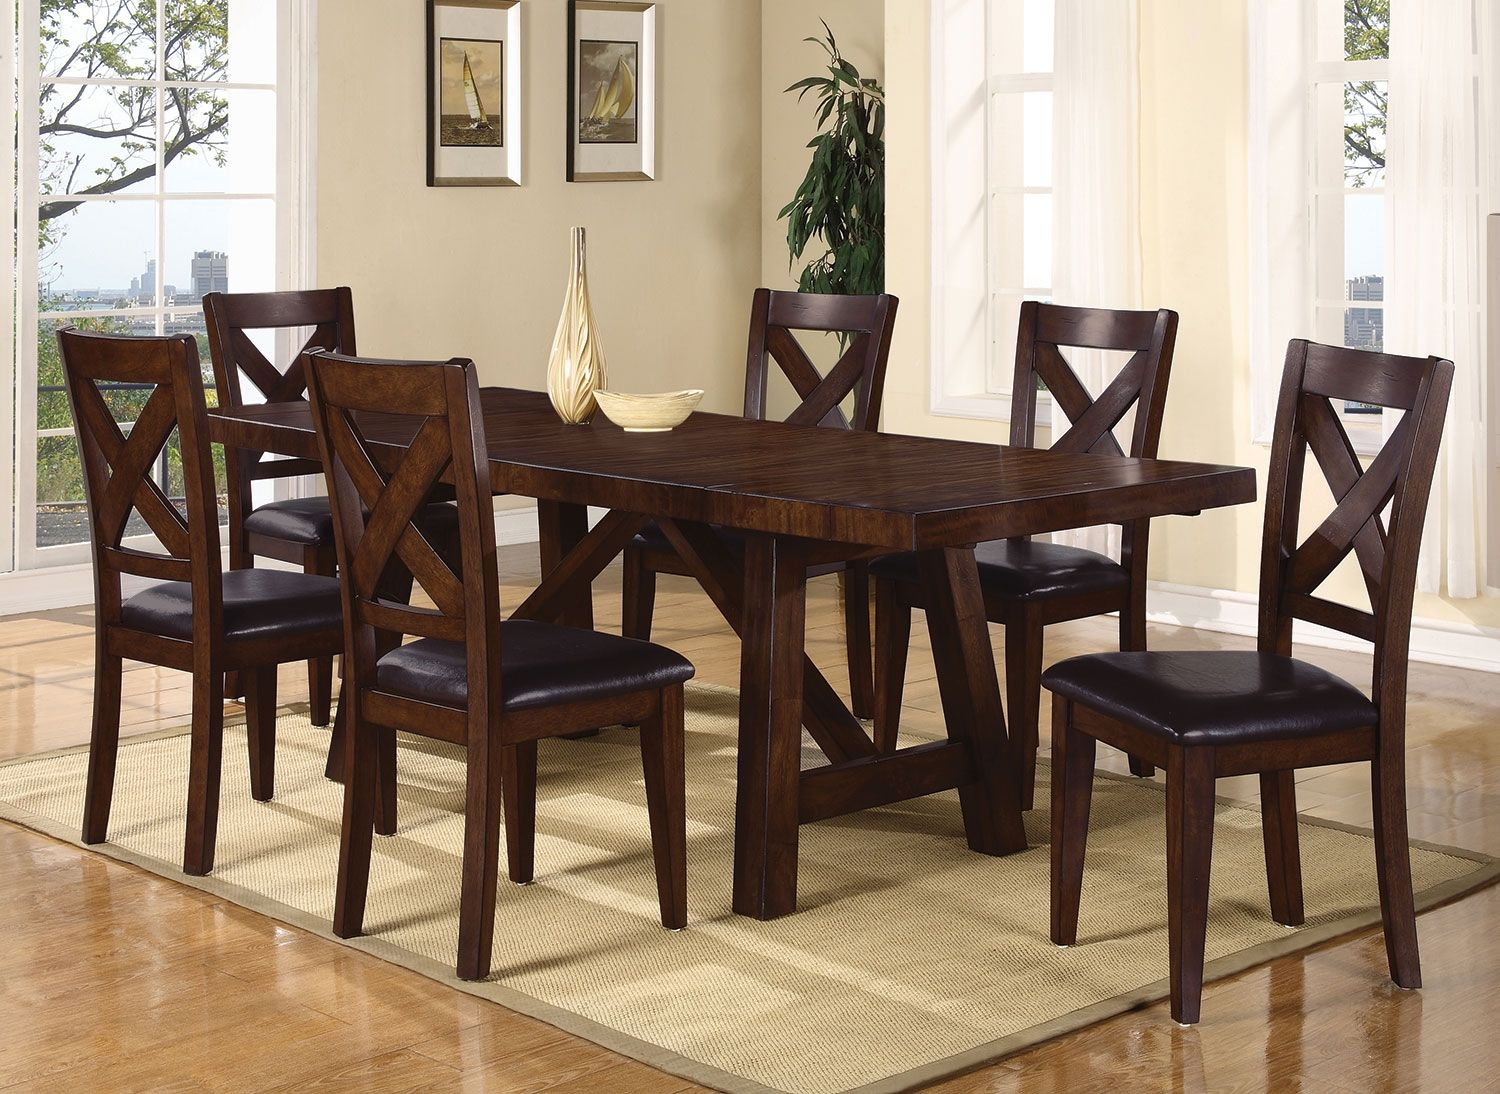 Adara 7 Piece Dining Package With Cross Back Chairs The Brick